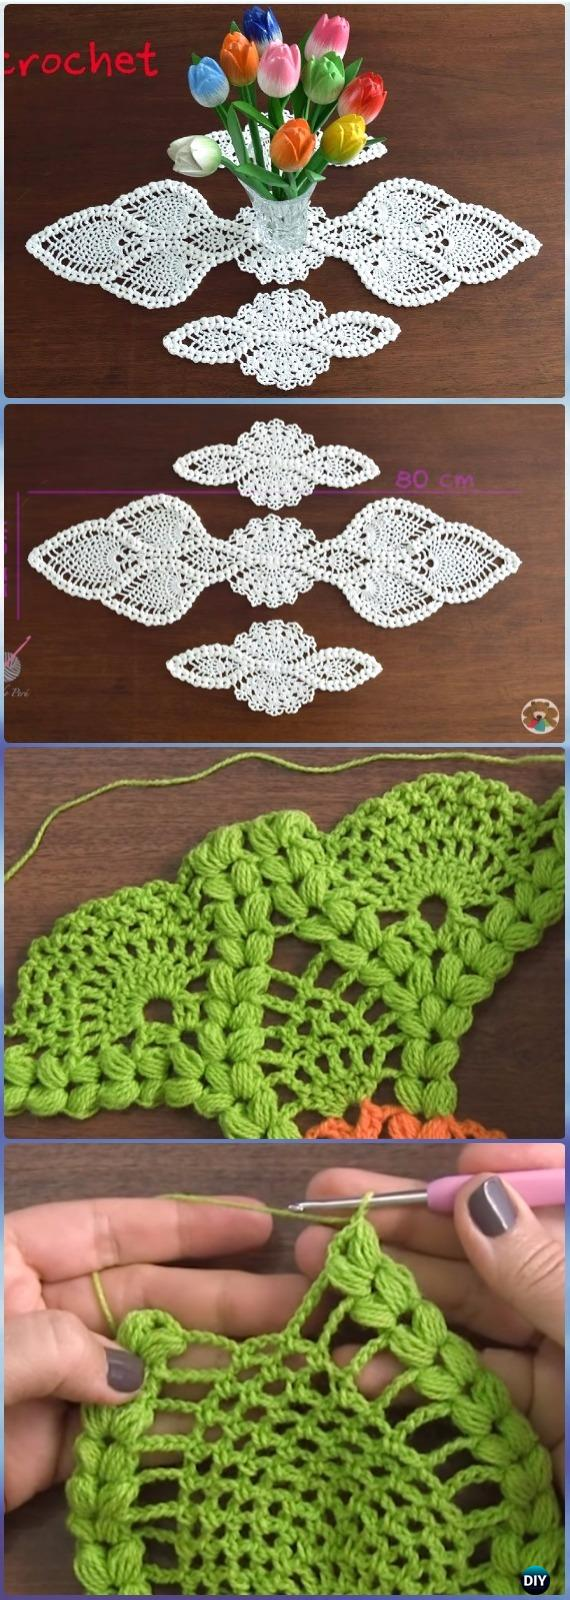 Crochet Puff Pineapple Table Runner Free Pattern Video - Crochet Table Runner Free Patterns